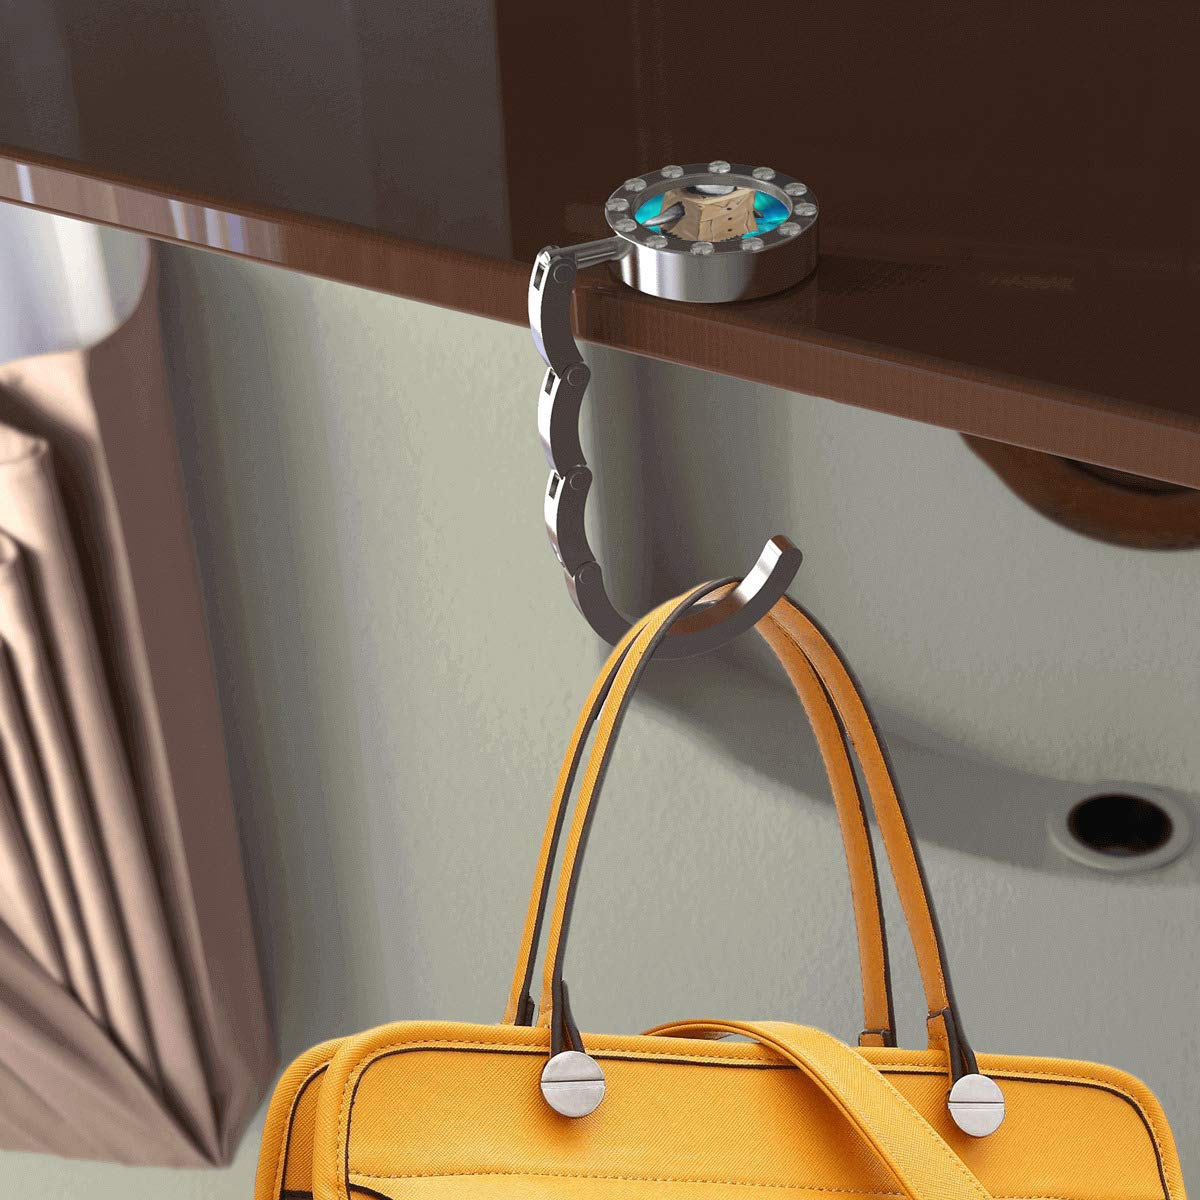 Convenient Stylish Suitable for Daily Use of Bag Hanger Round with drill Hamburg Bag Hanger for Women